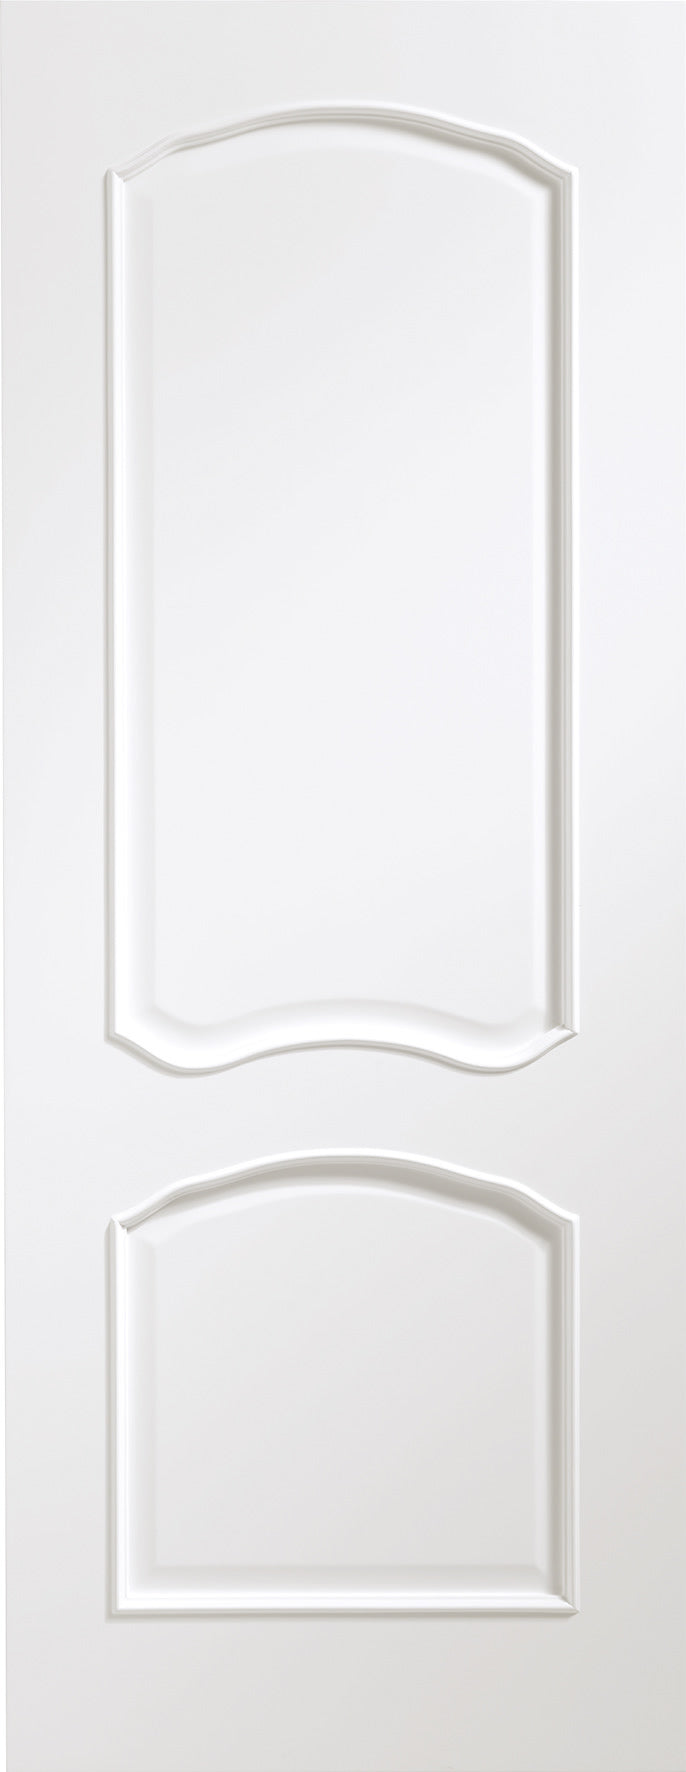 Louis prefinished white internal door.